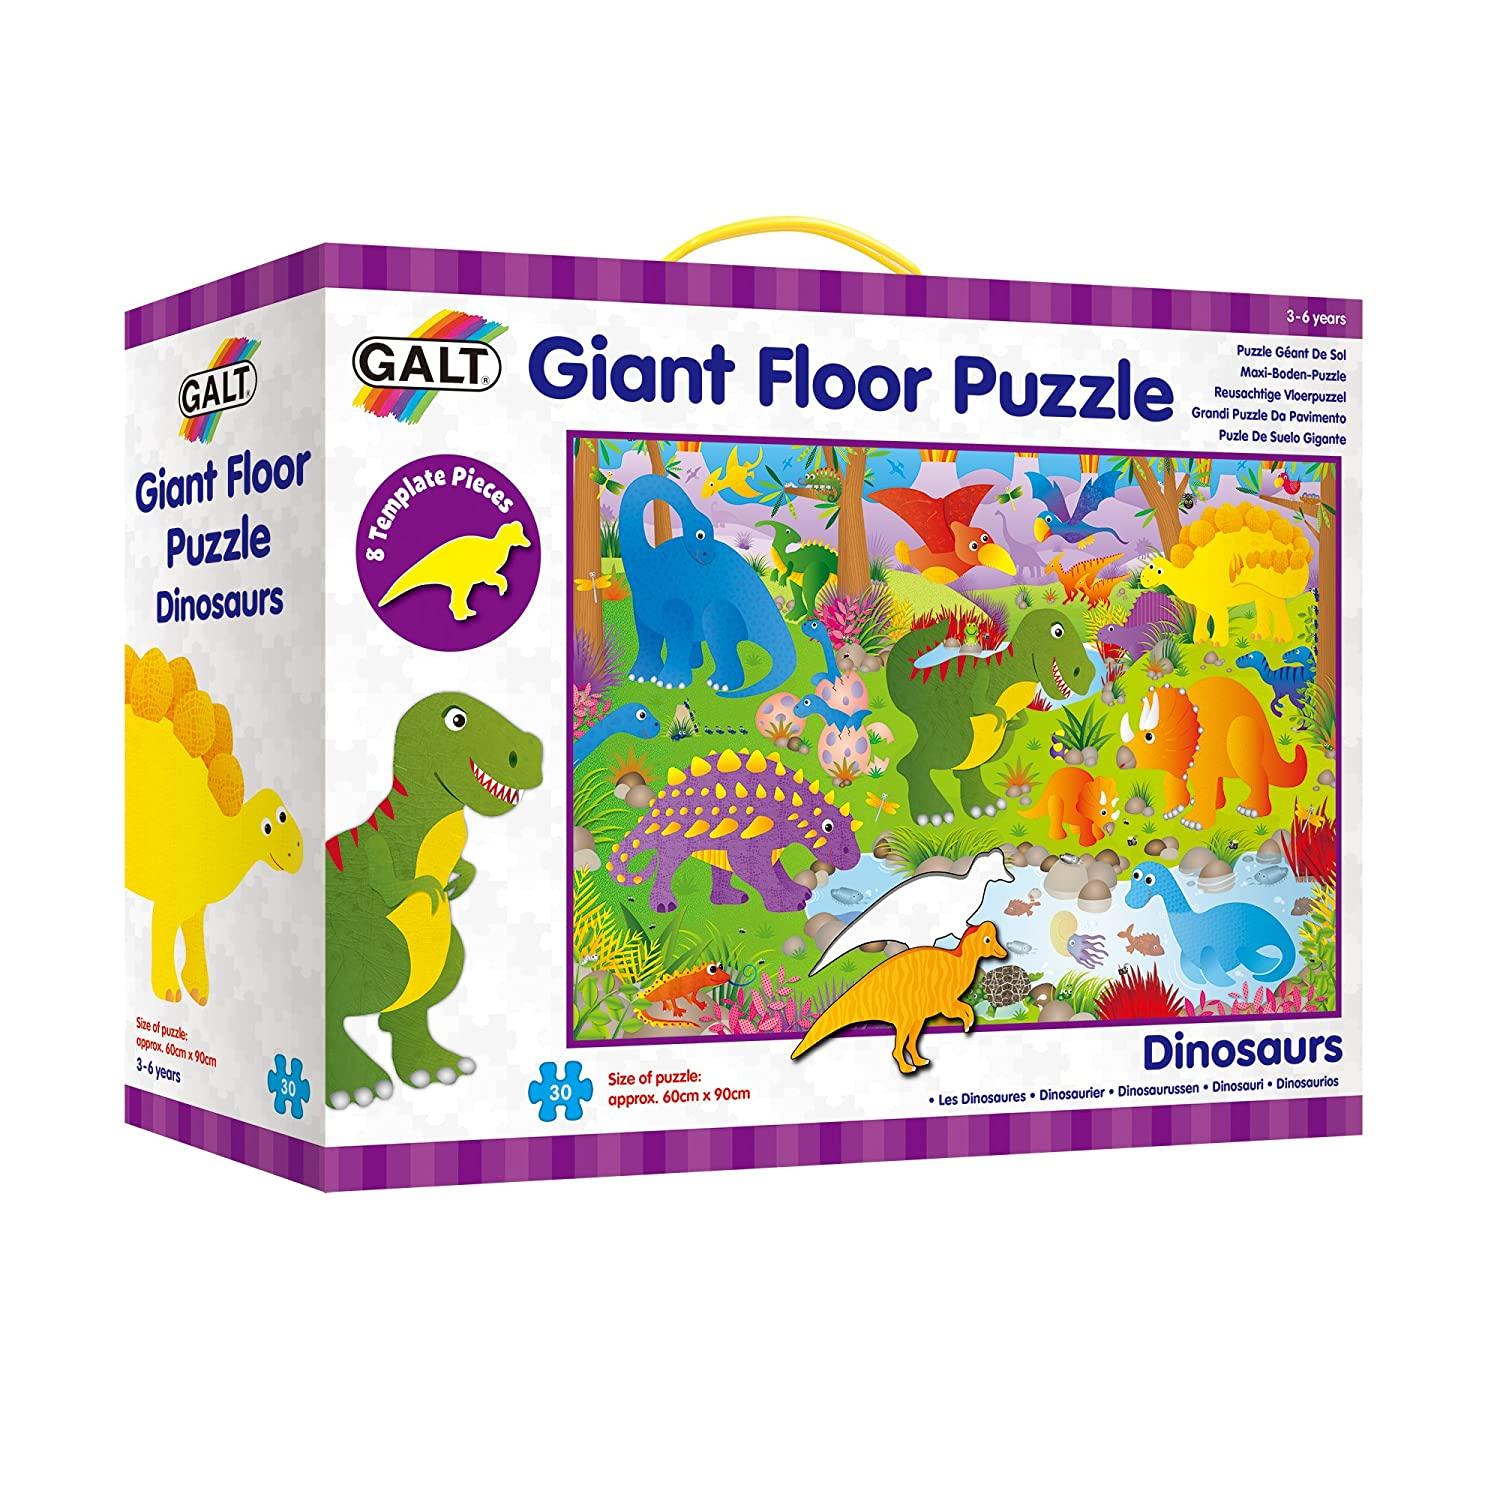 Galt Toys Giant Floor Puzzle, Dinosaurs A0866B 3to4 5to8 Children's Puzzles